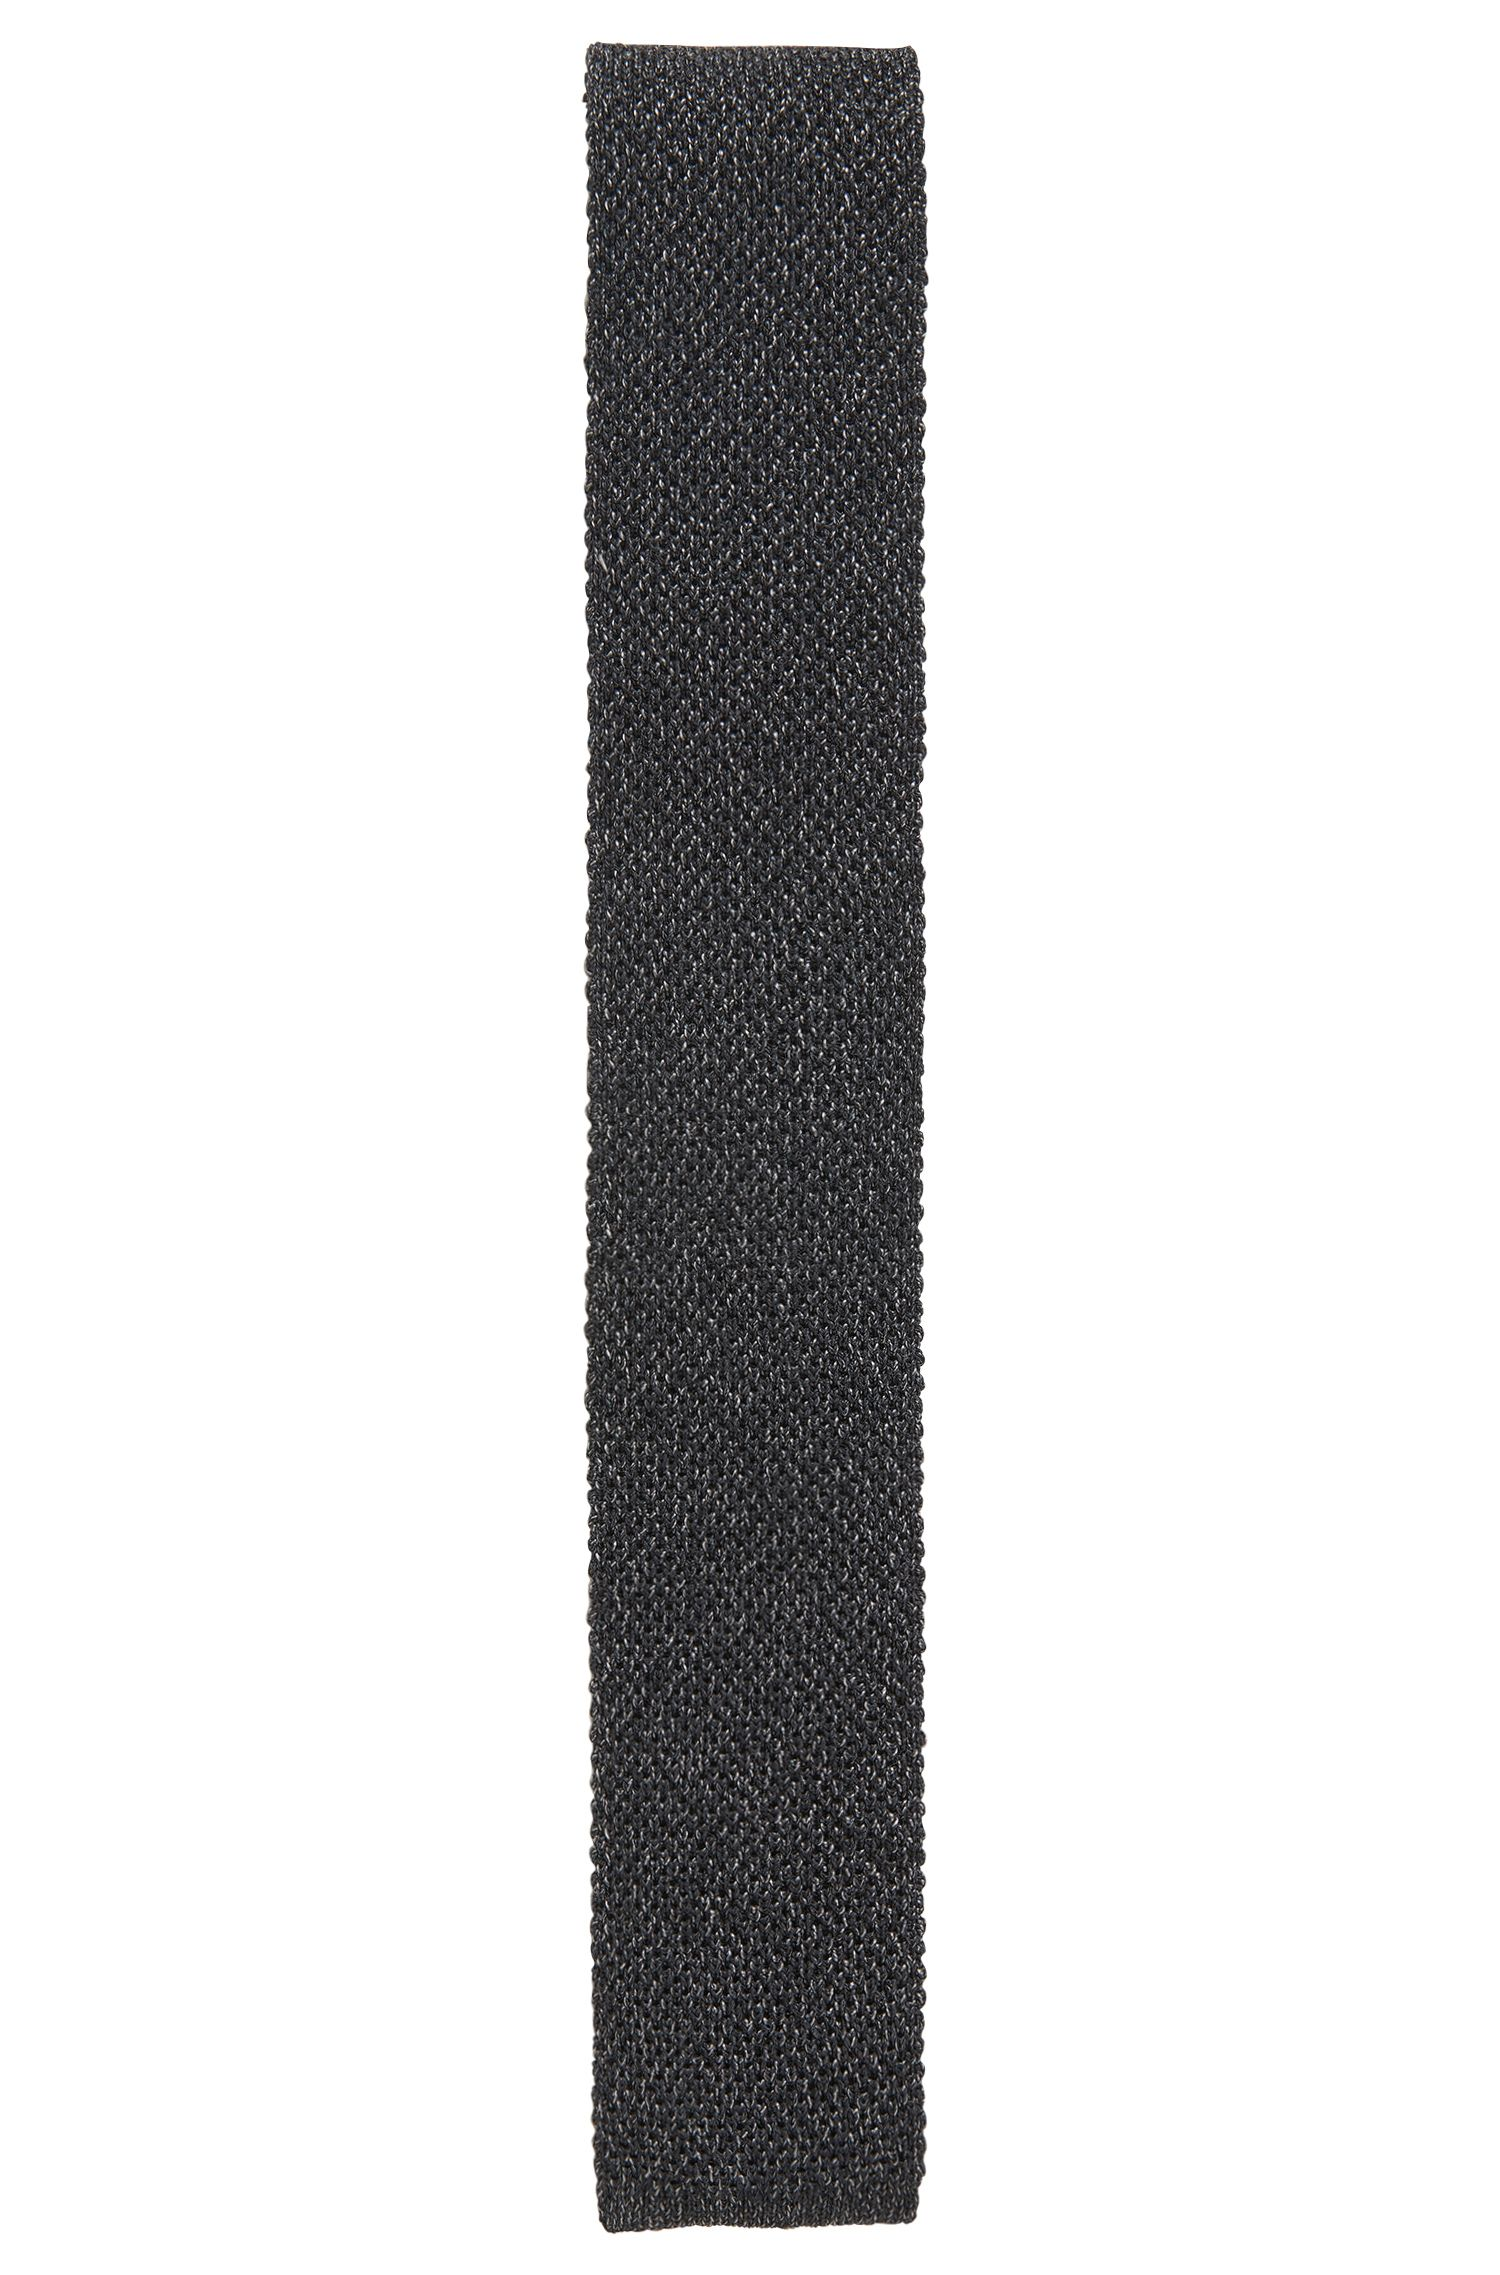 Reversible knitted tie in a wool blend